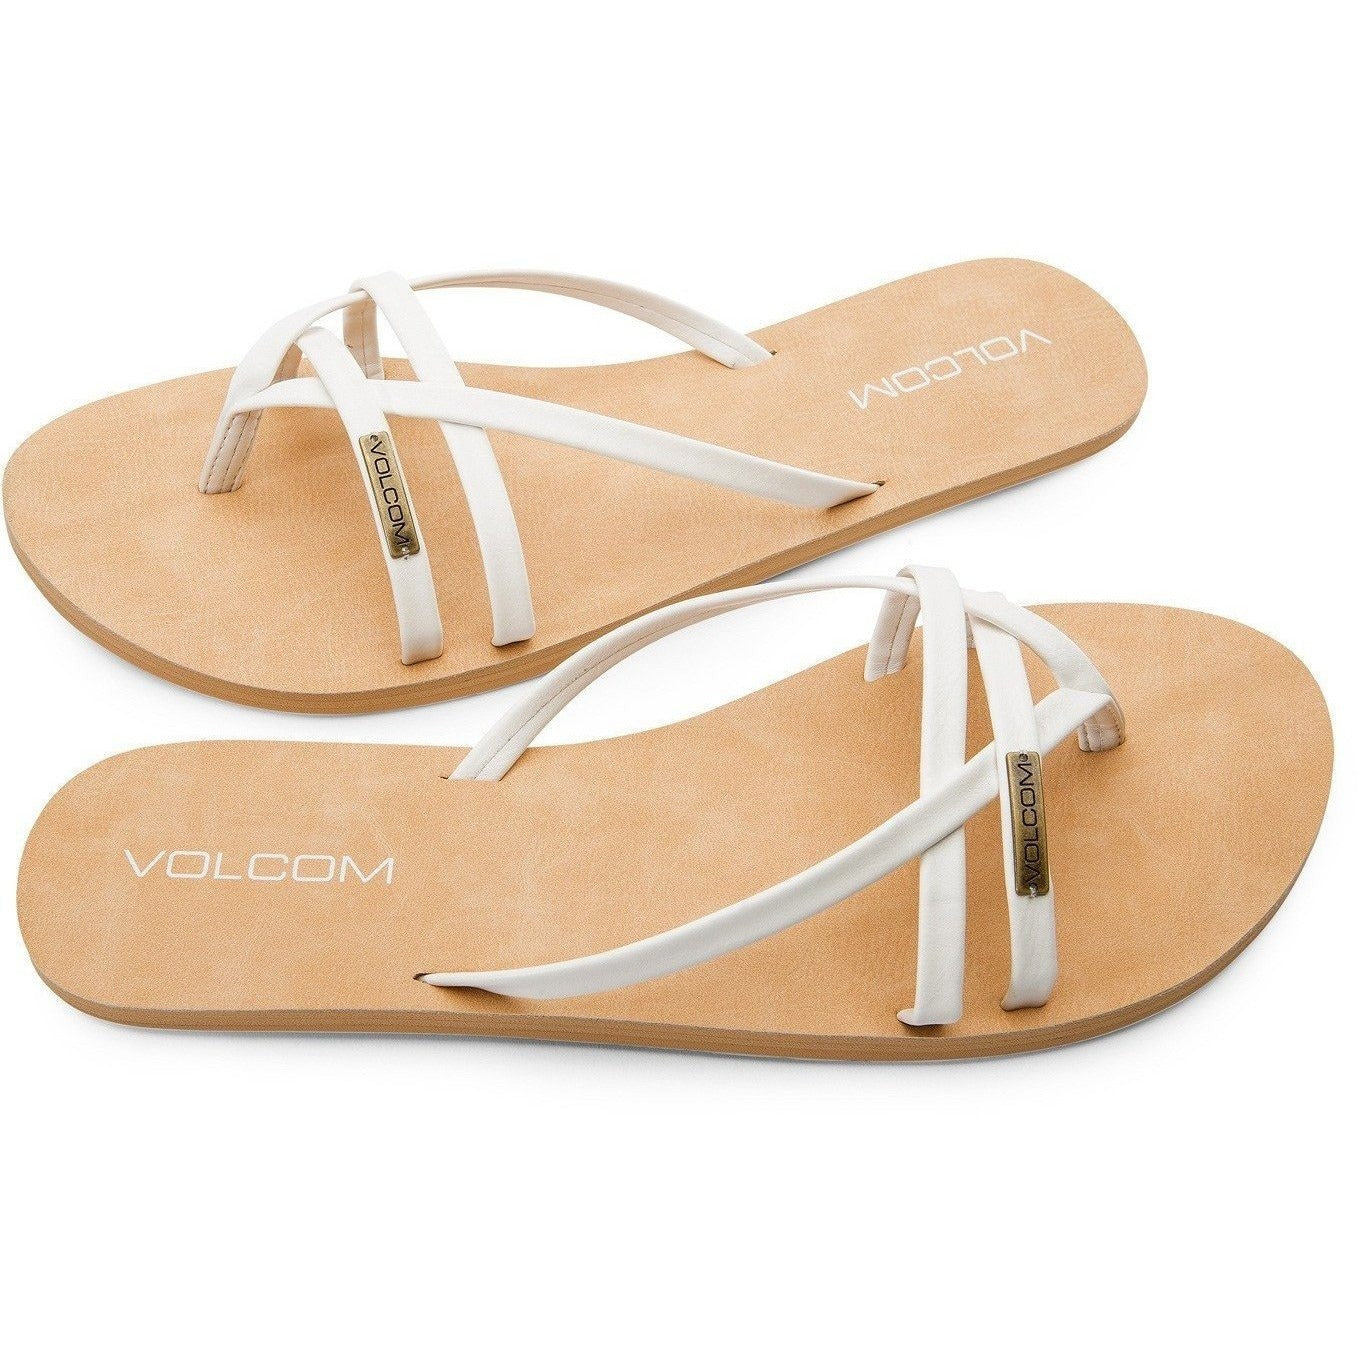 Volcom Lookout 2 Women's Sandals - White - 88 Gear